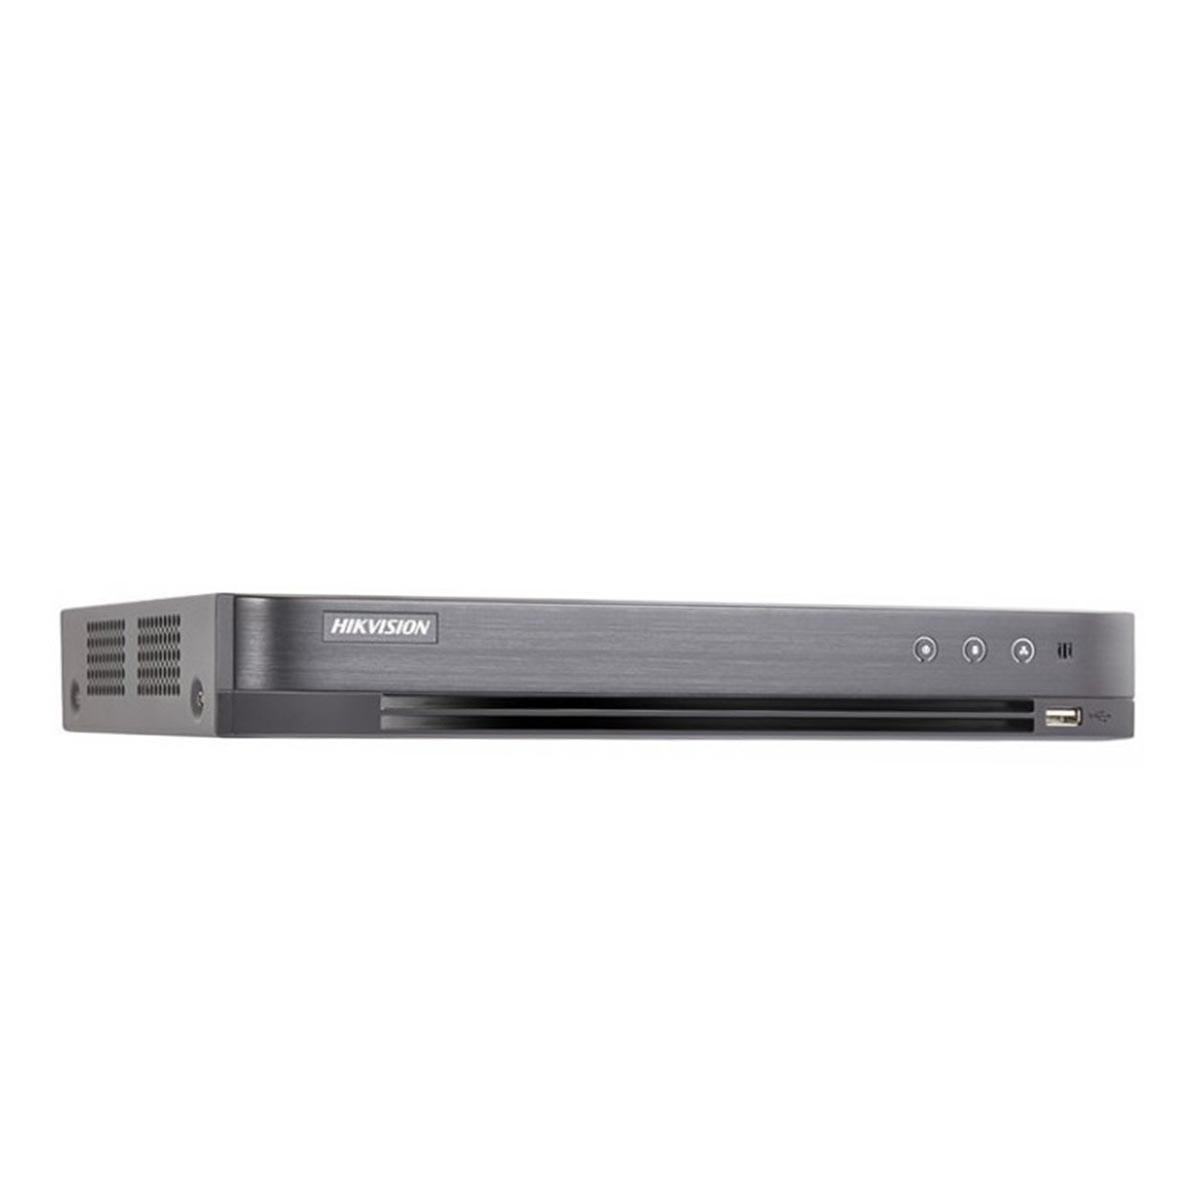 DVR STAND ALONE HIKVISION 2MP 08 CANAIS COM HD 1 TB IDS-7208HQHI-M1/S/ST